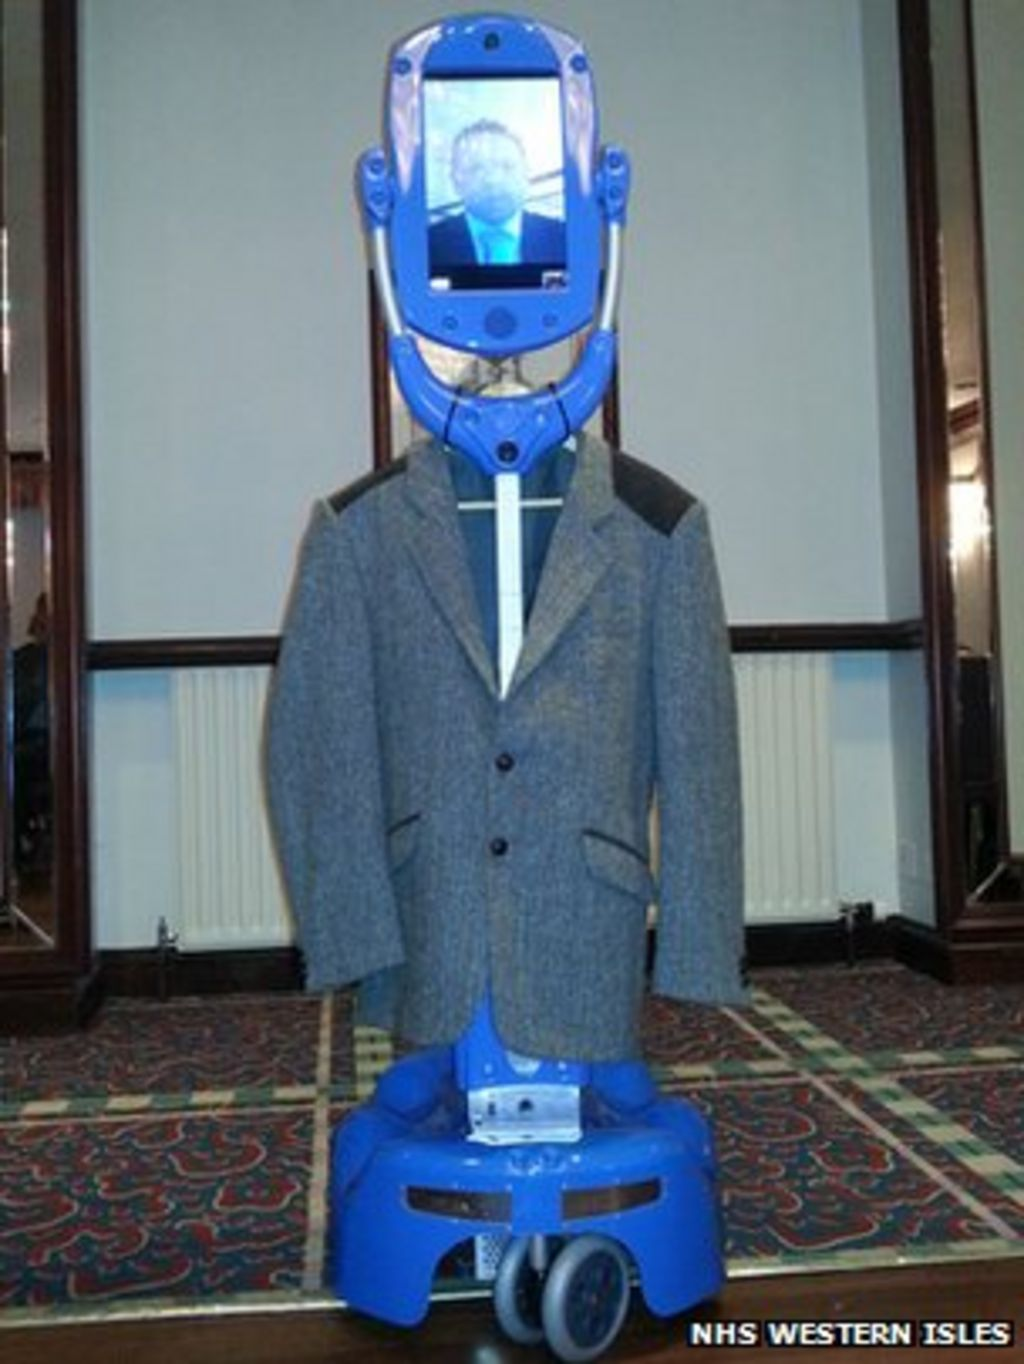 robots to help people with dementia in western isles